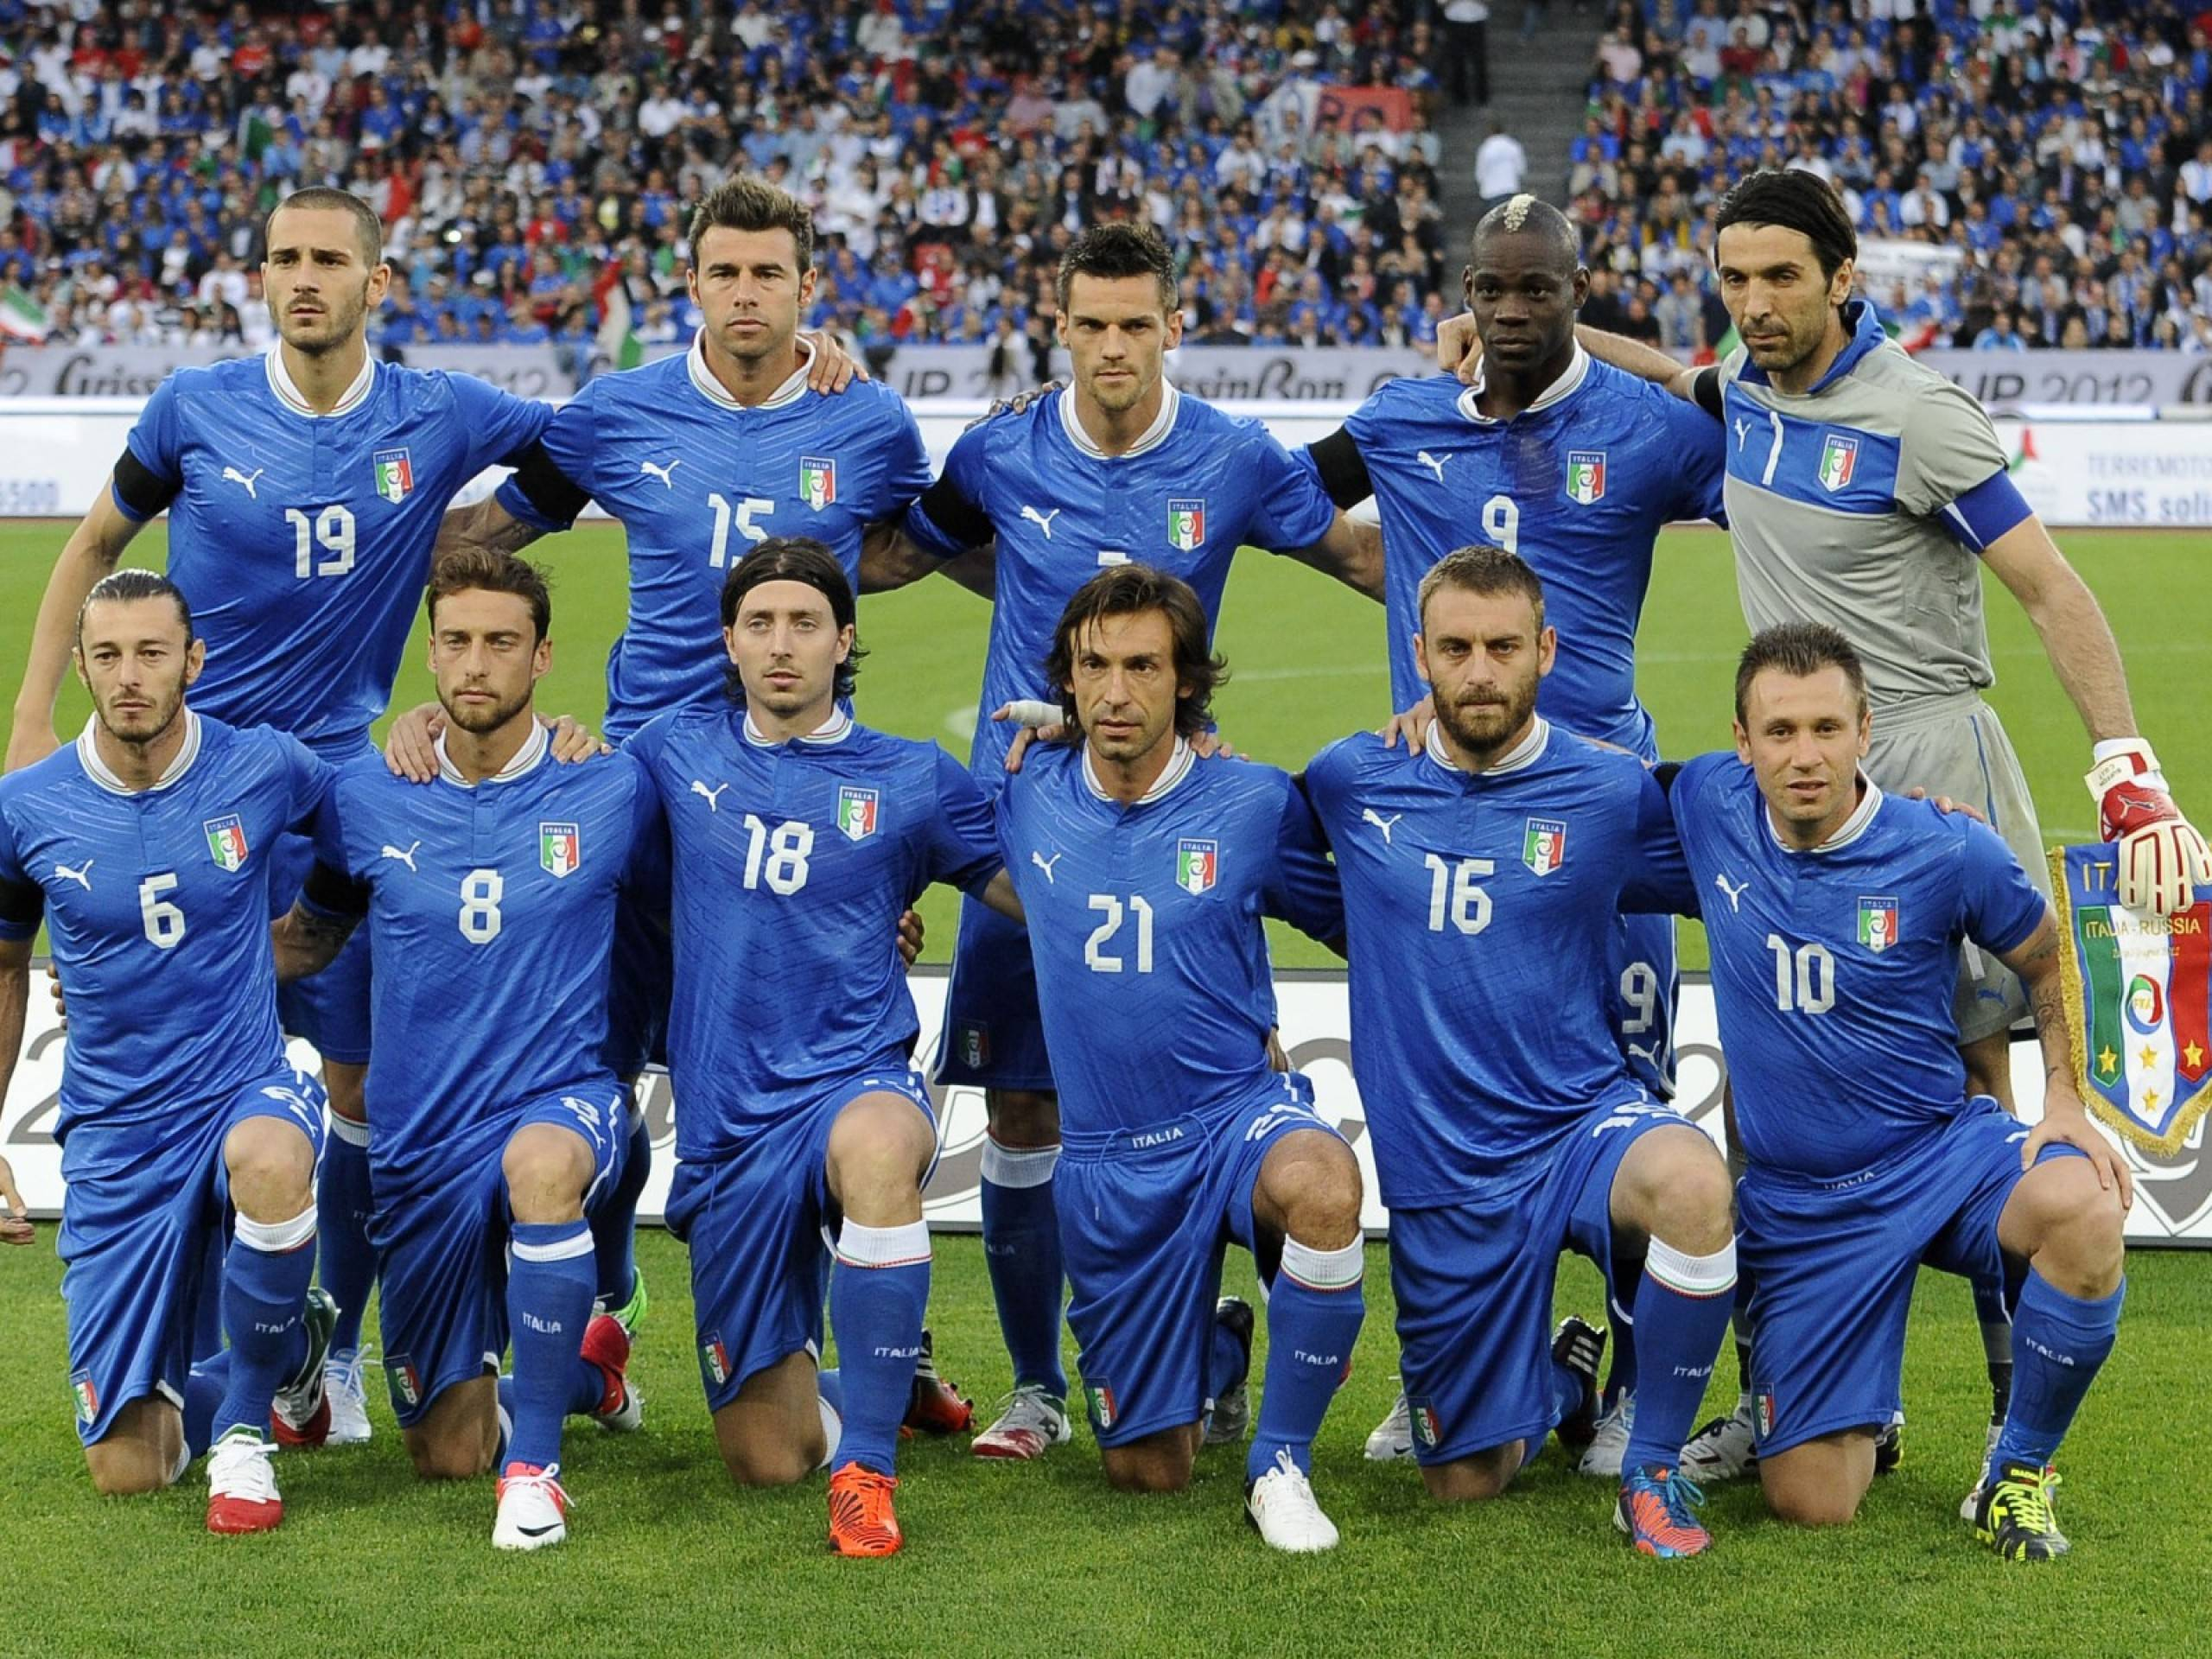 italy soccer team Football Wallpaper 2560x1920